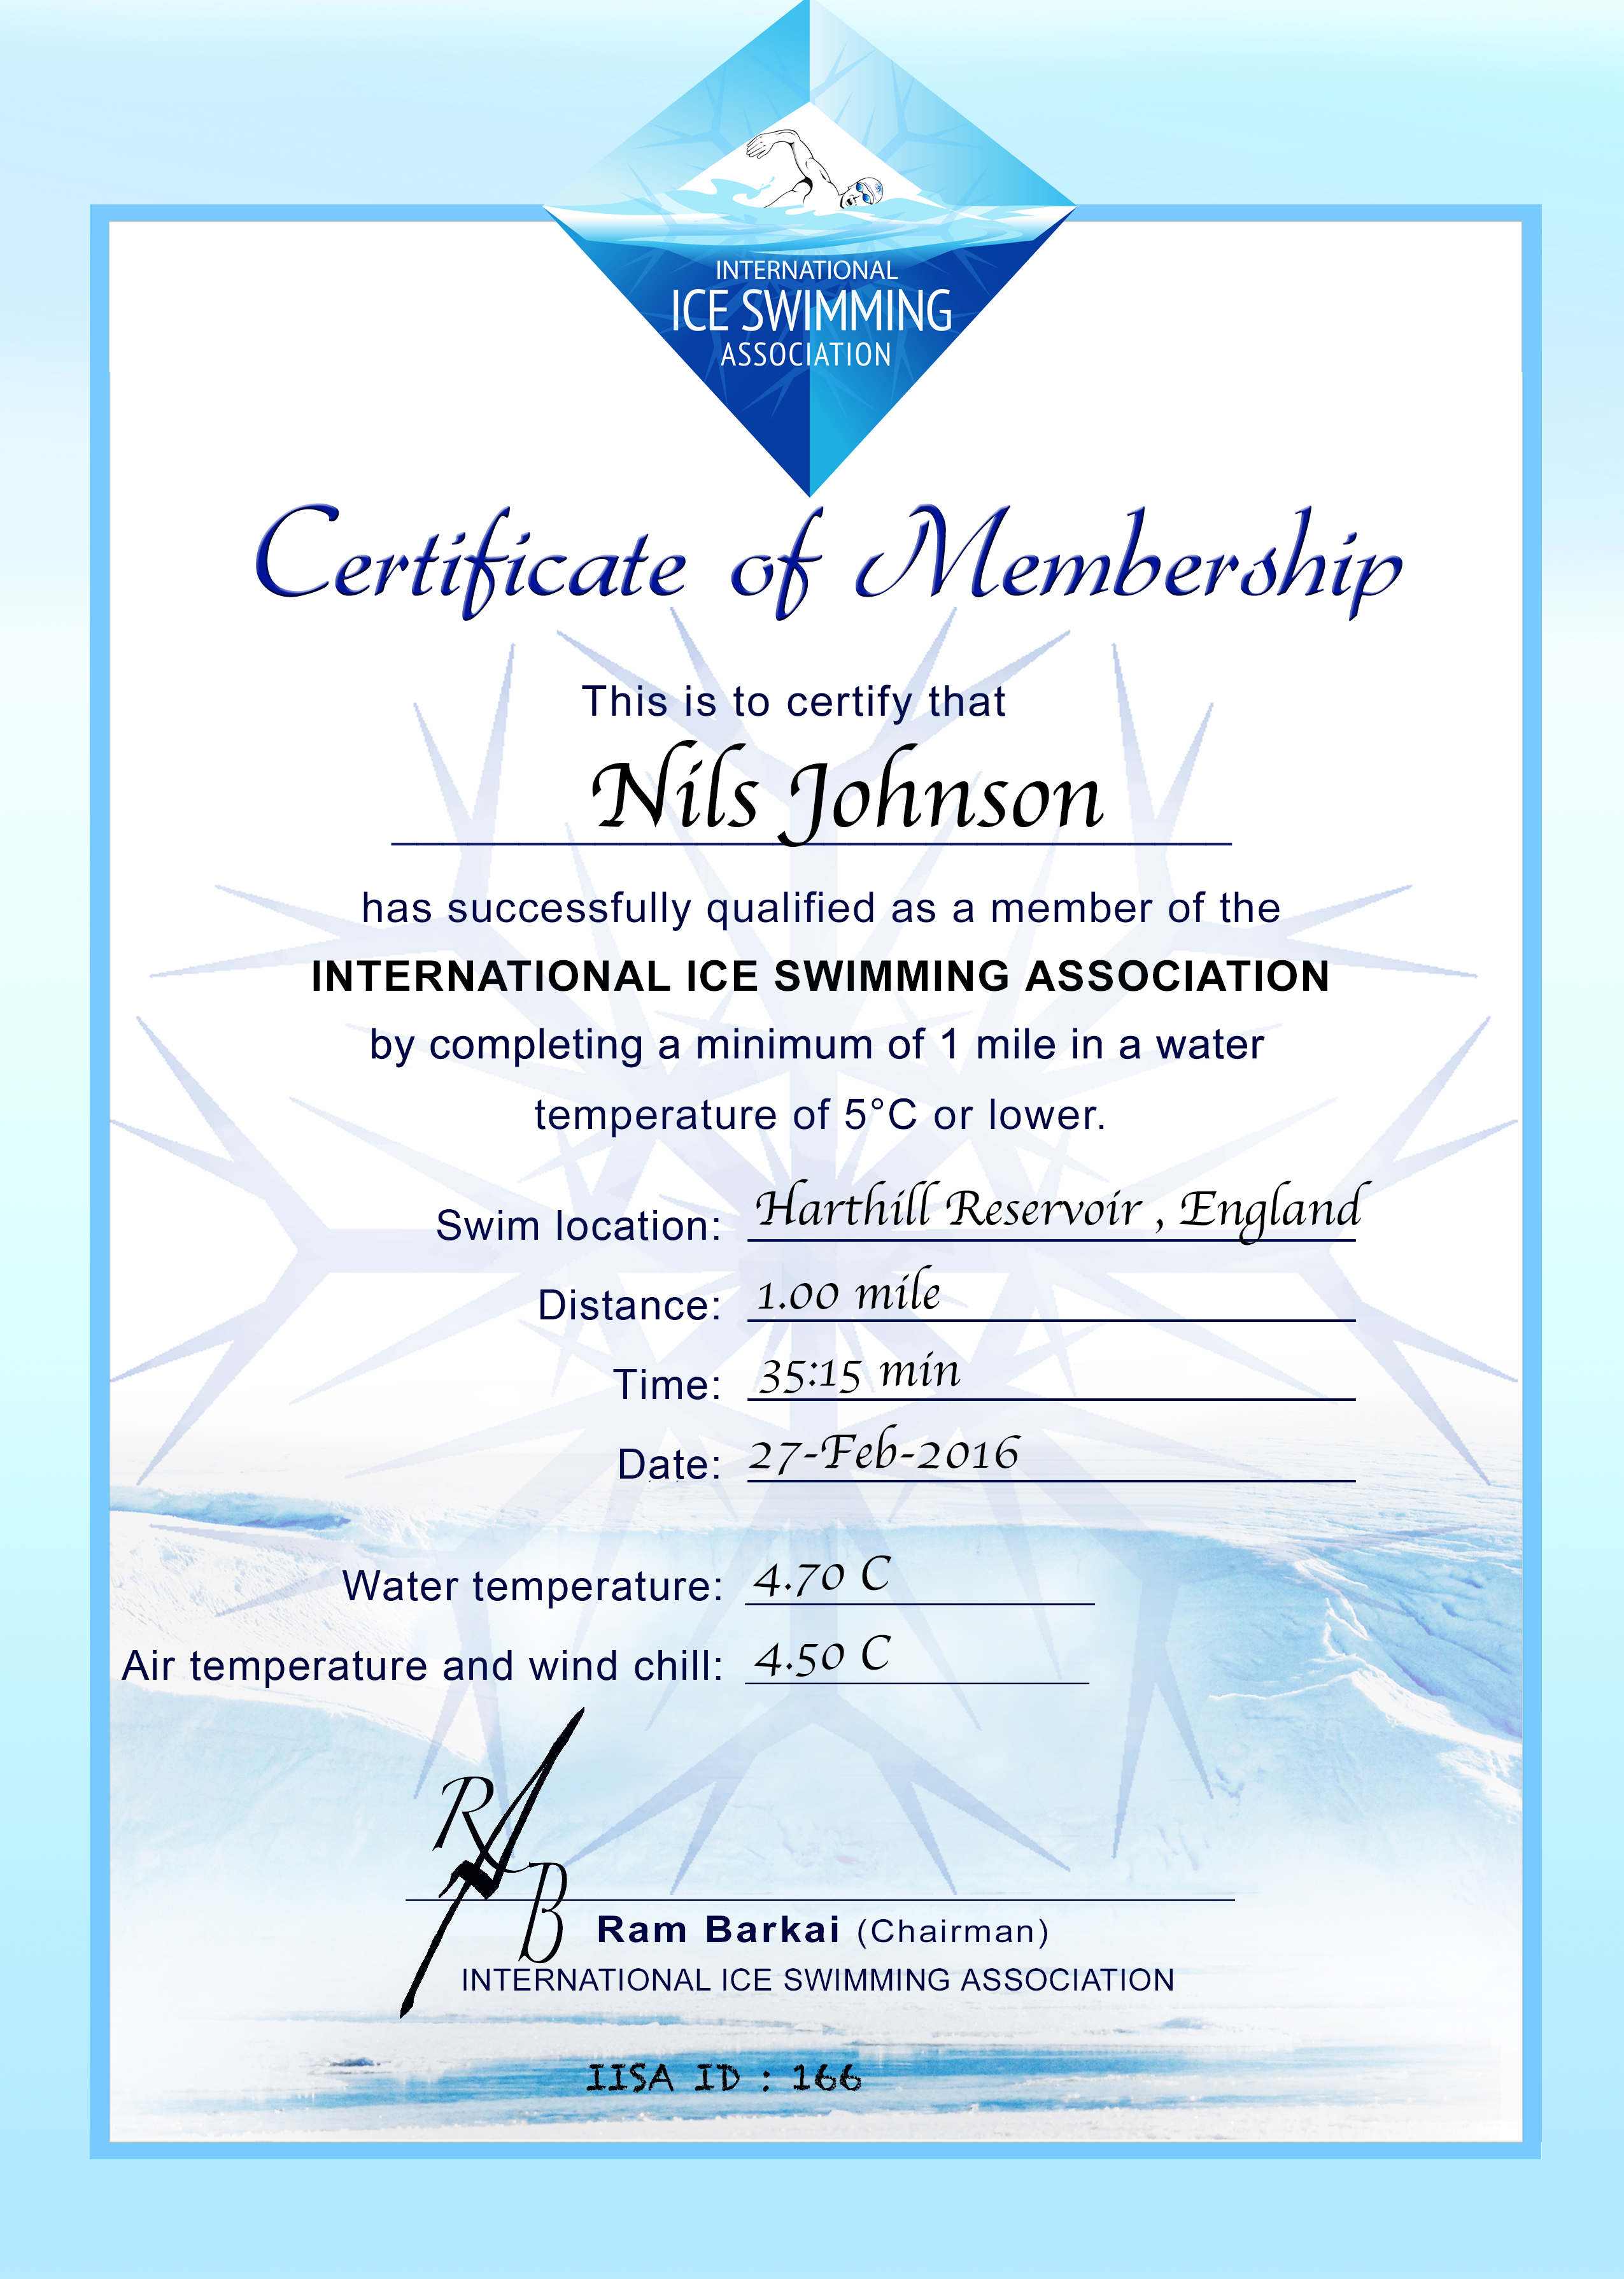 Ice Mile Certificate - Nils Johnson